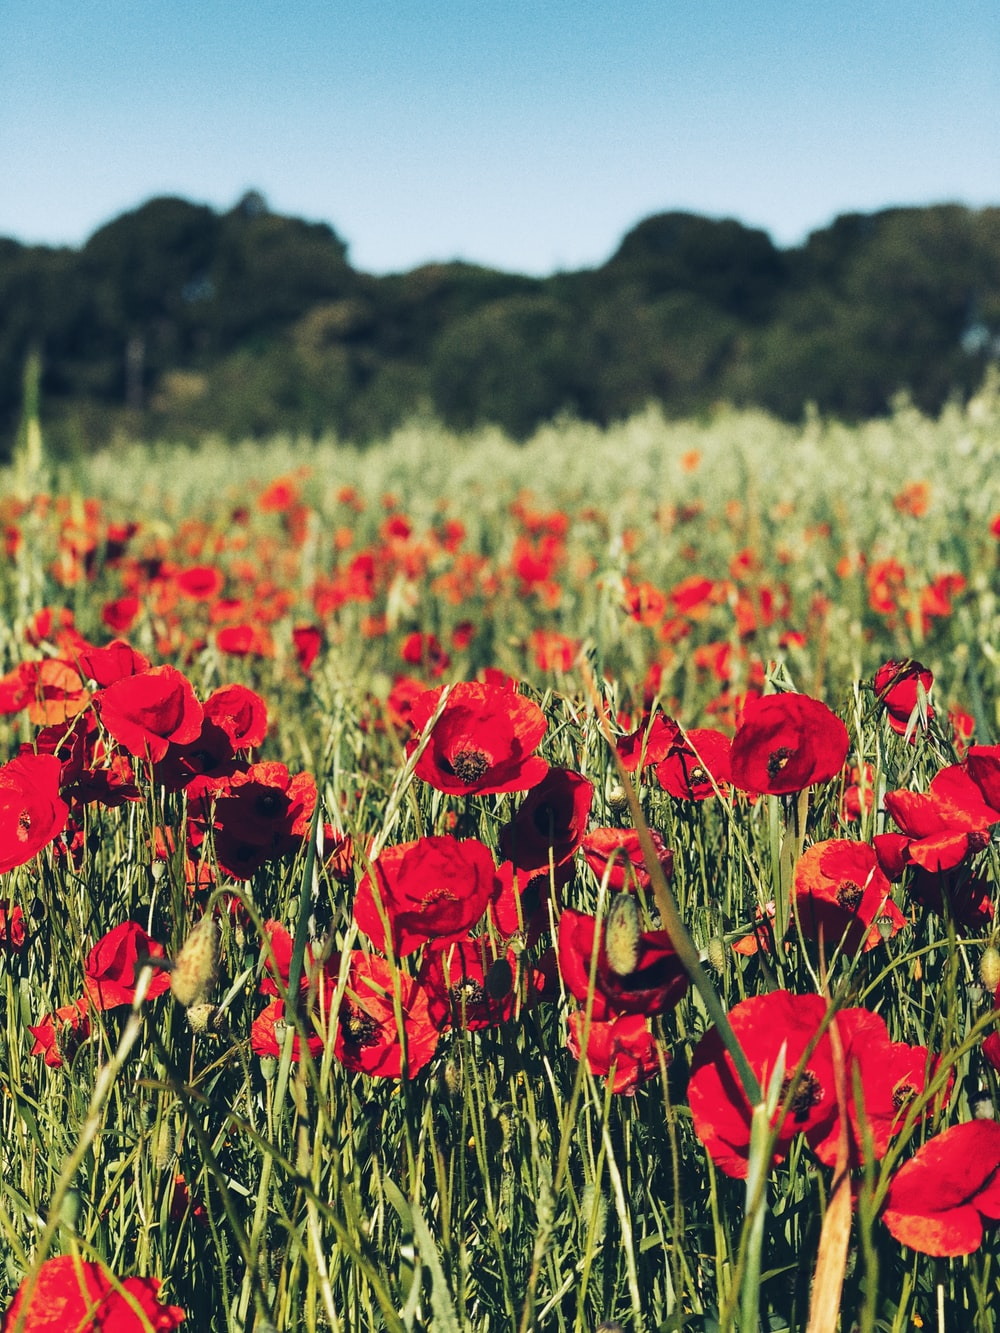 Wild Poppy Pictures Hd Download Free Images On Unsplash